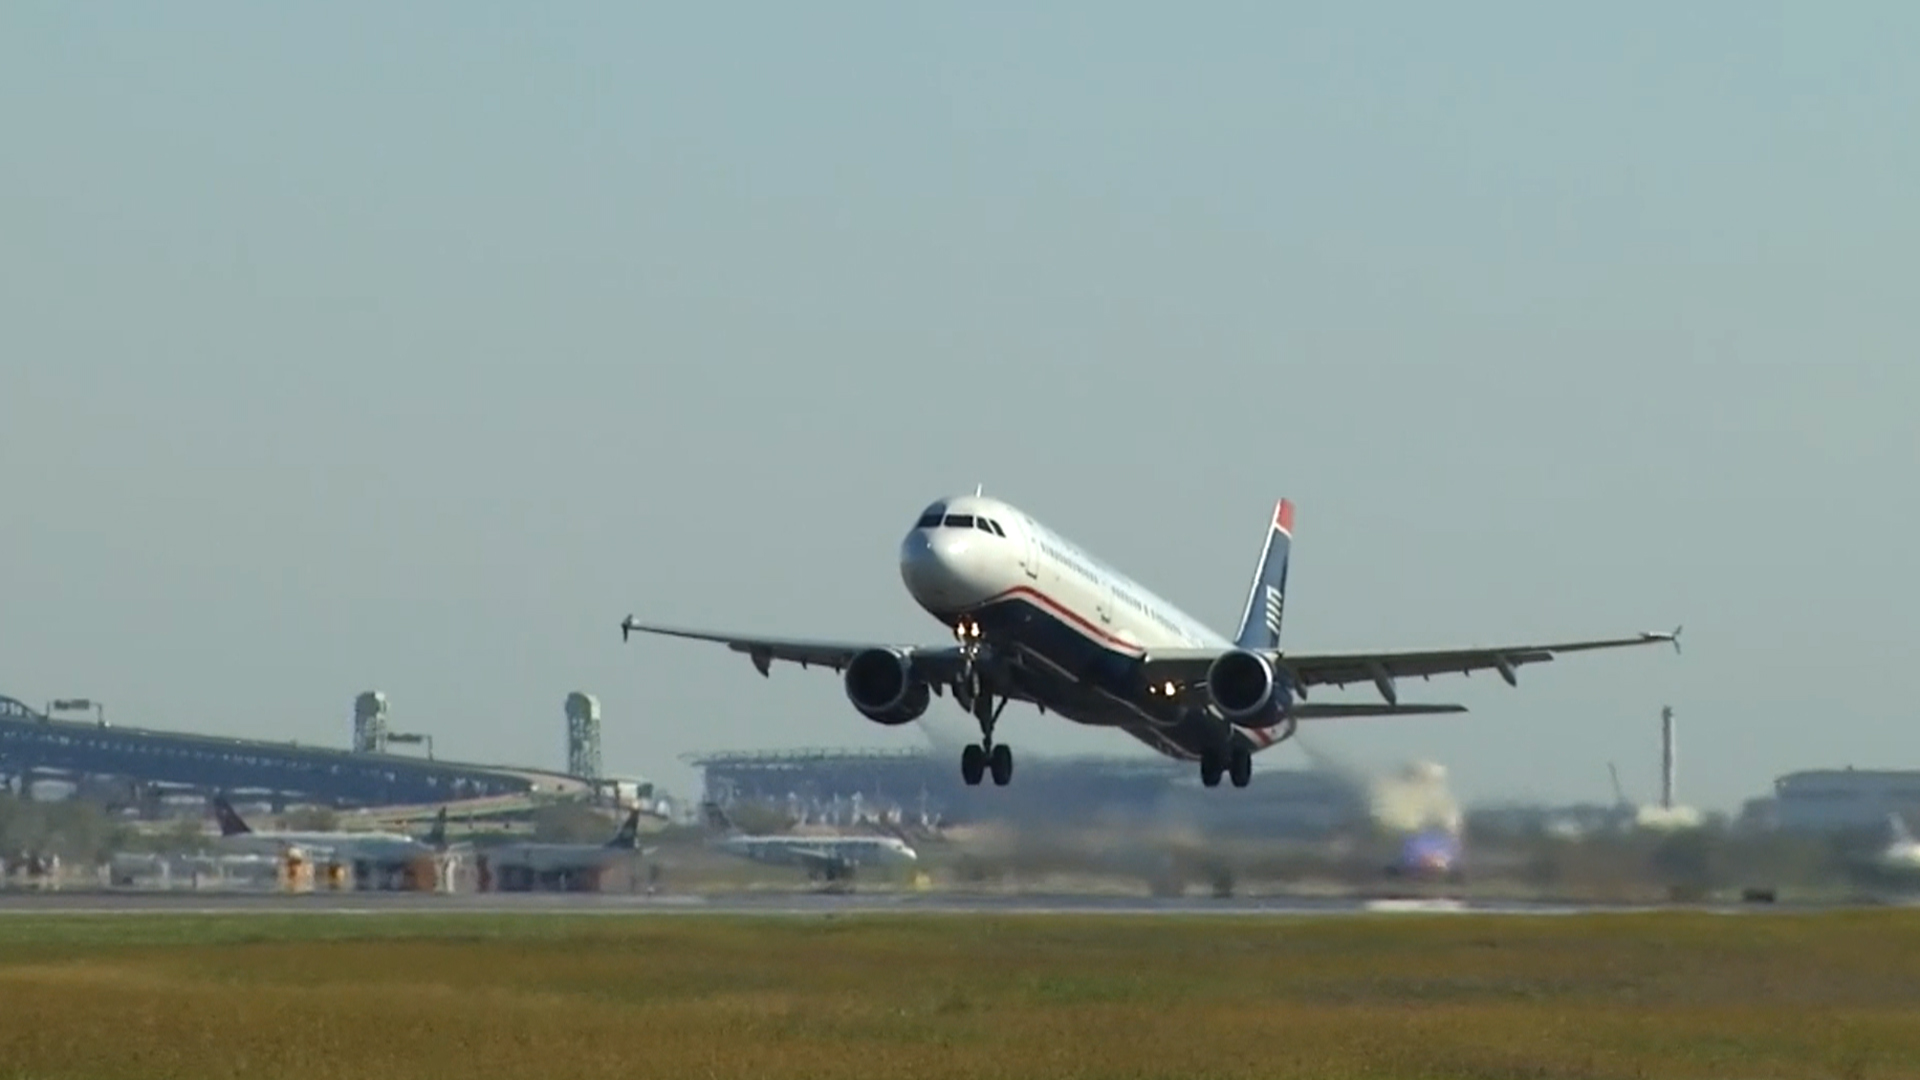 American Airlines to offer 'no-frills' fares